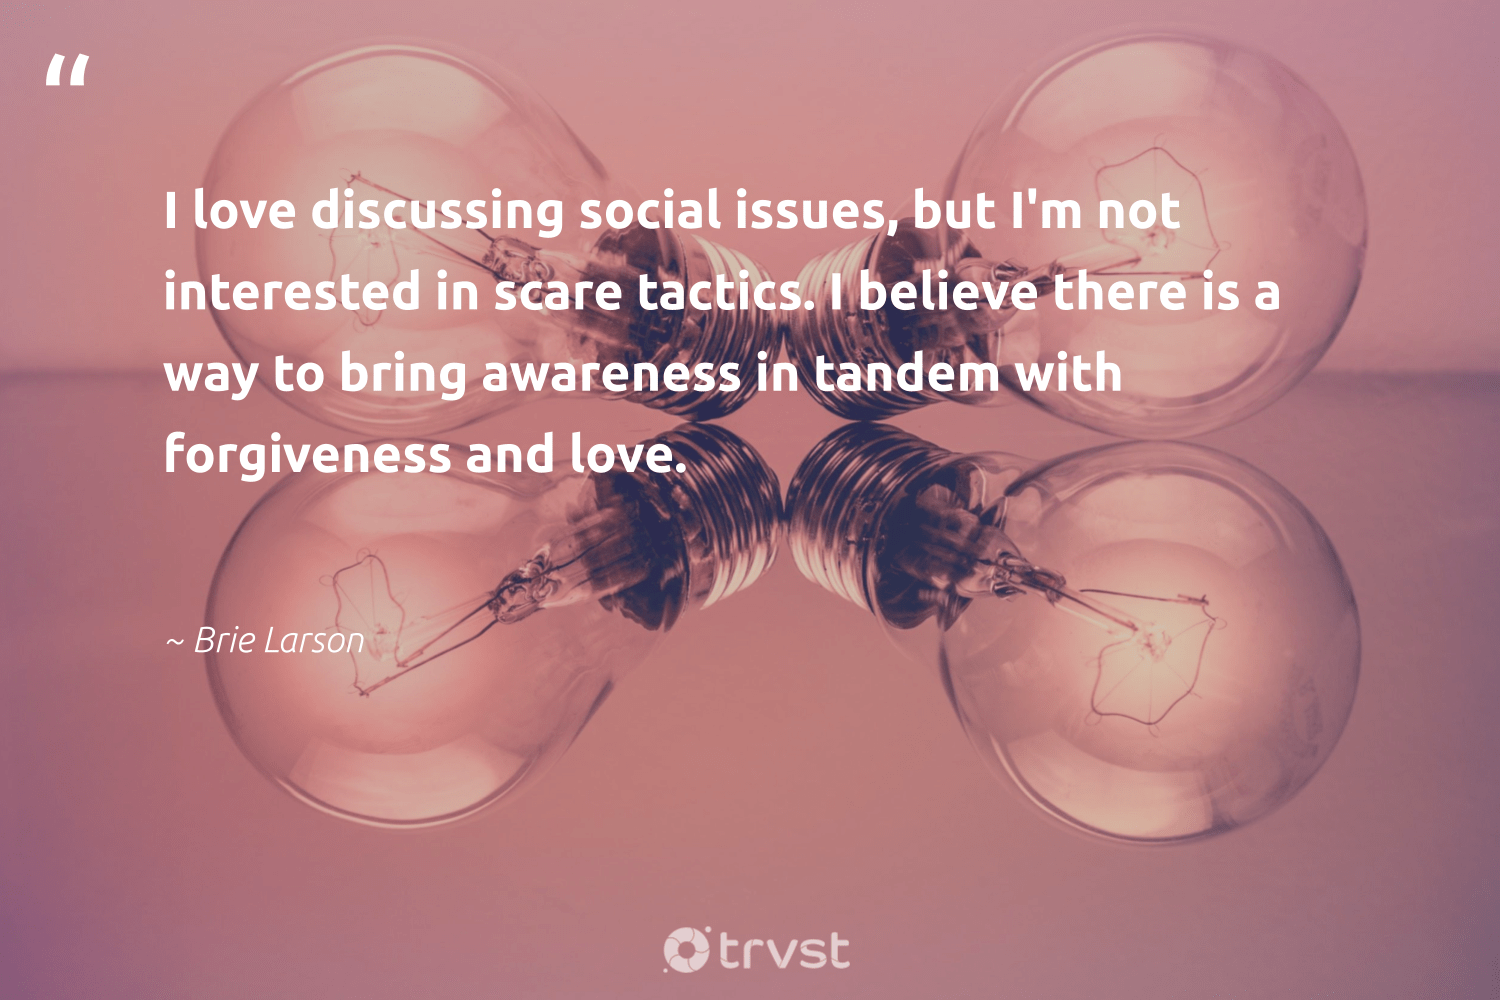 """I love discussing social issues, but I'm not interested in scare tactics. I believe there is a way to bring awareness in tandem with forgiveness and love.""  - Brie Larson #trvst #quotes #love #weareallone #takeaction #makeadifference #gogreen #giveback #dosomething #dogood #planetearthfirst #ethicalbusiness"